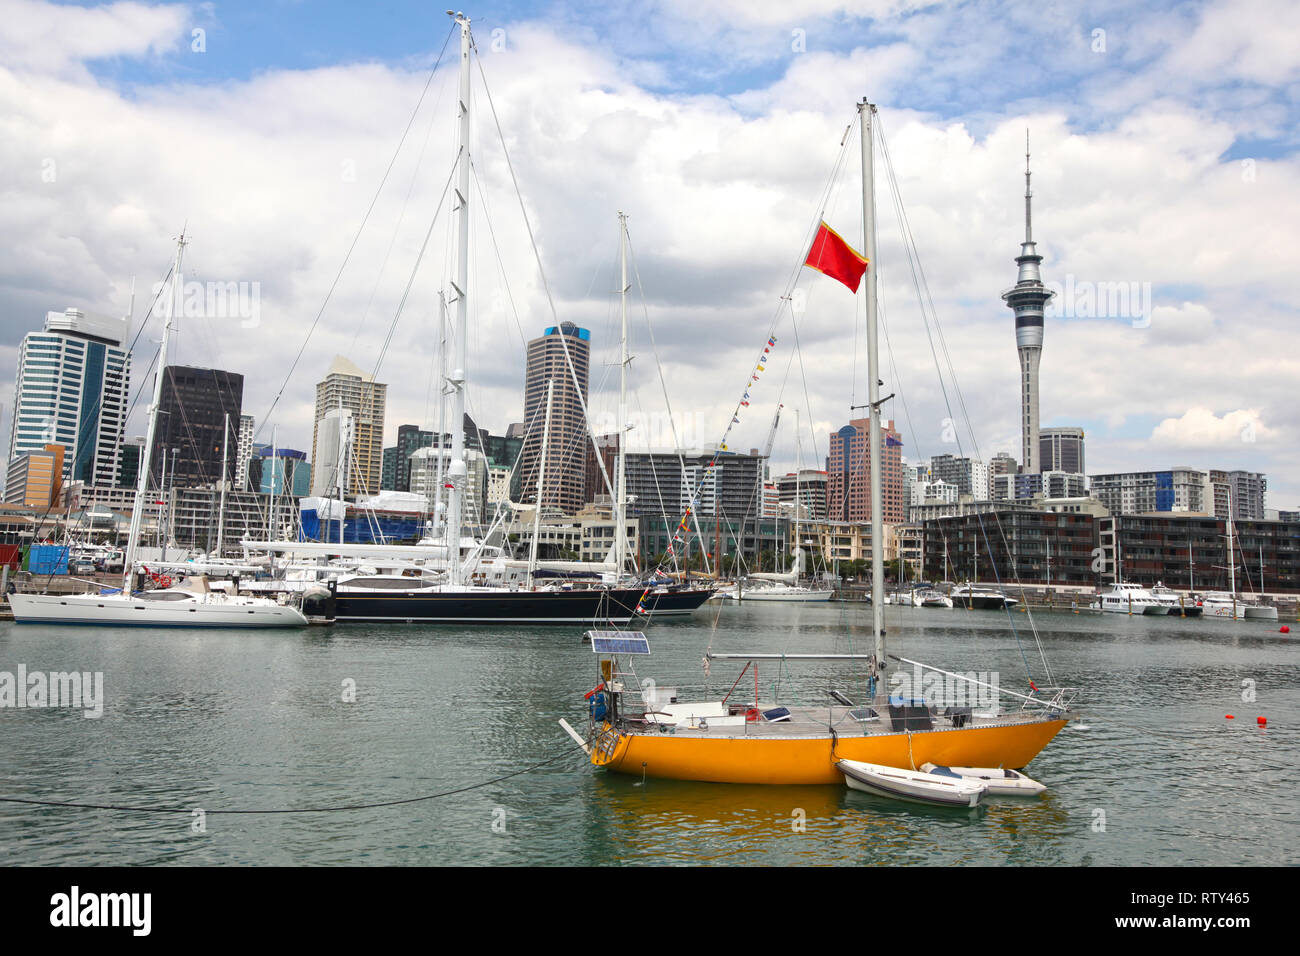 City view of Auckland, with high rise skyscrappers in the background and a yellow sailing boat in the foreground, North Island, New Zealand. - Stock Image